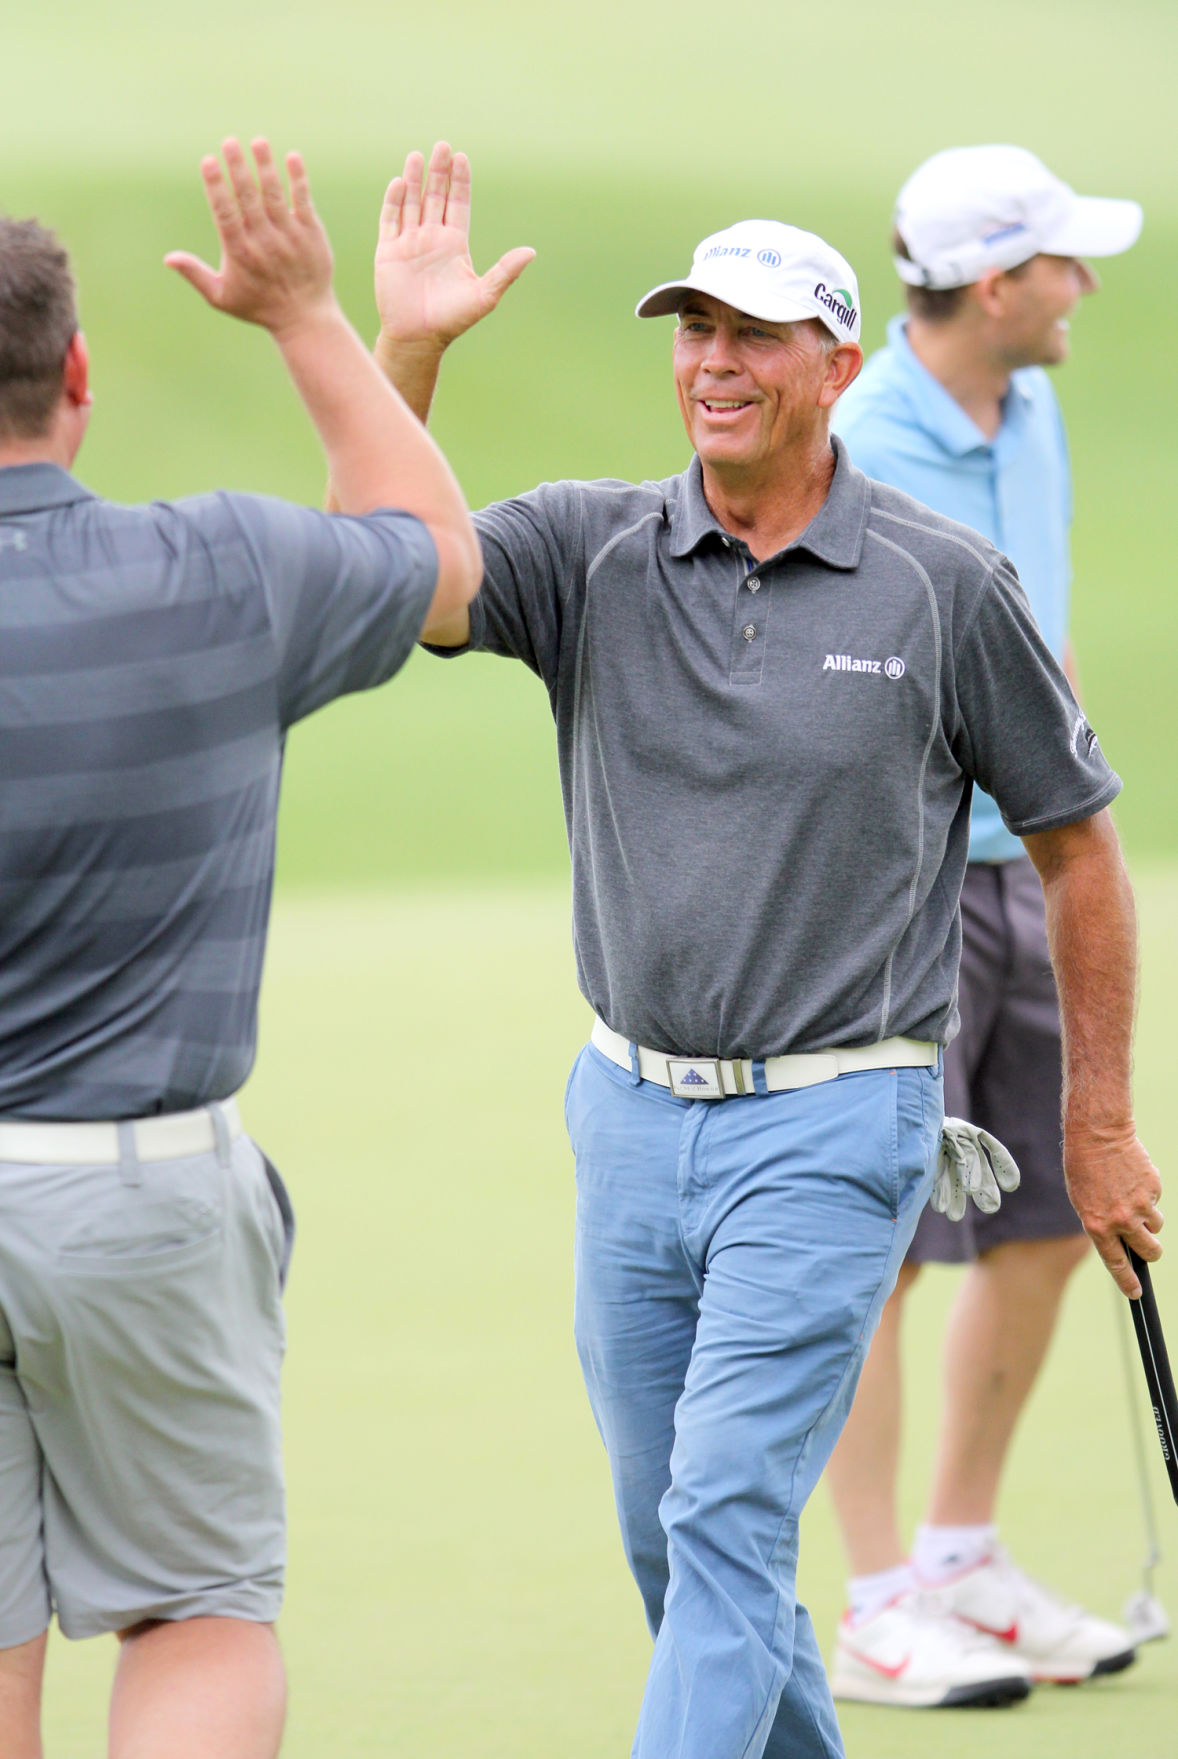 am fam championship the stage is set as steve stricker